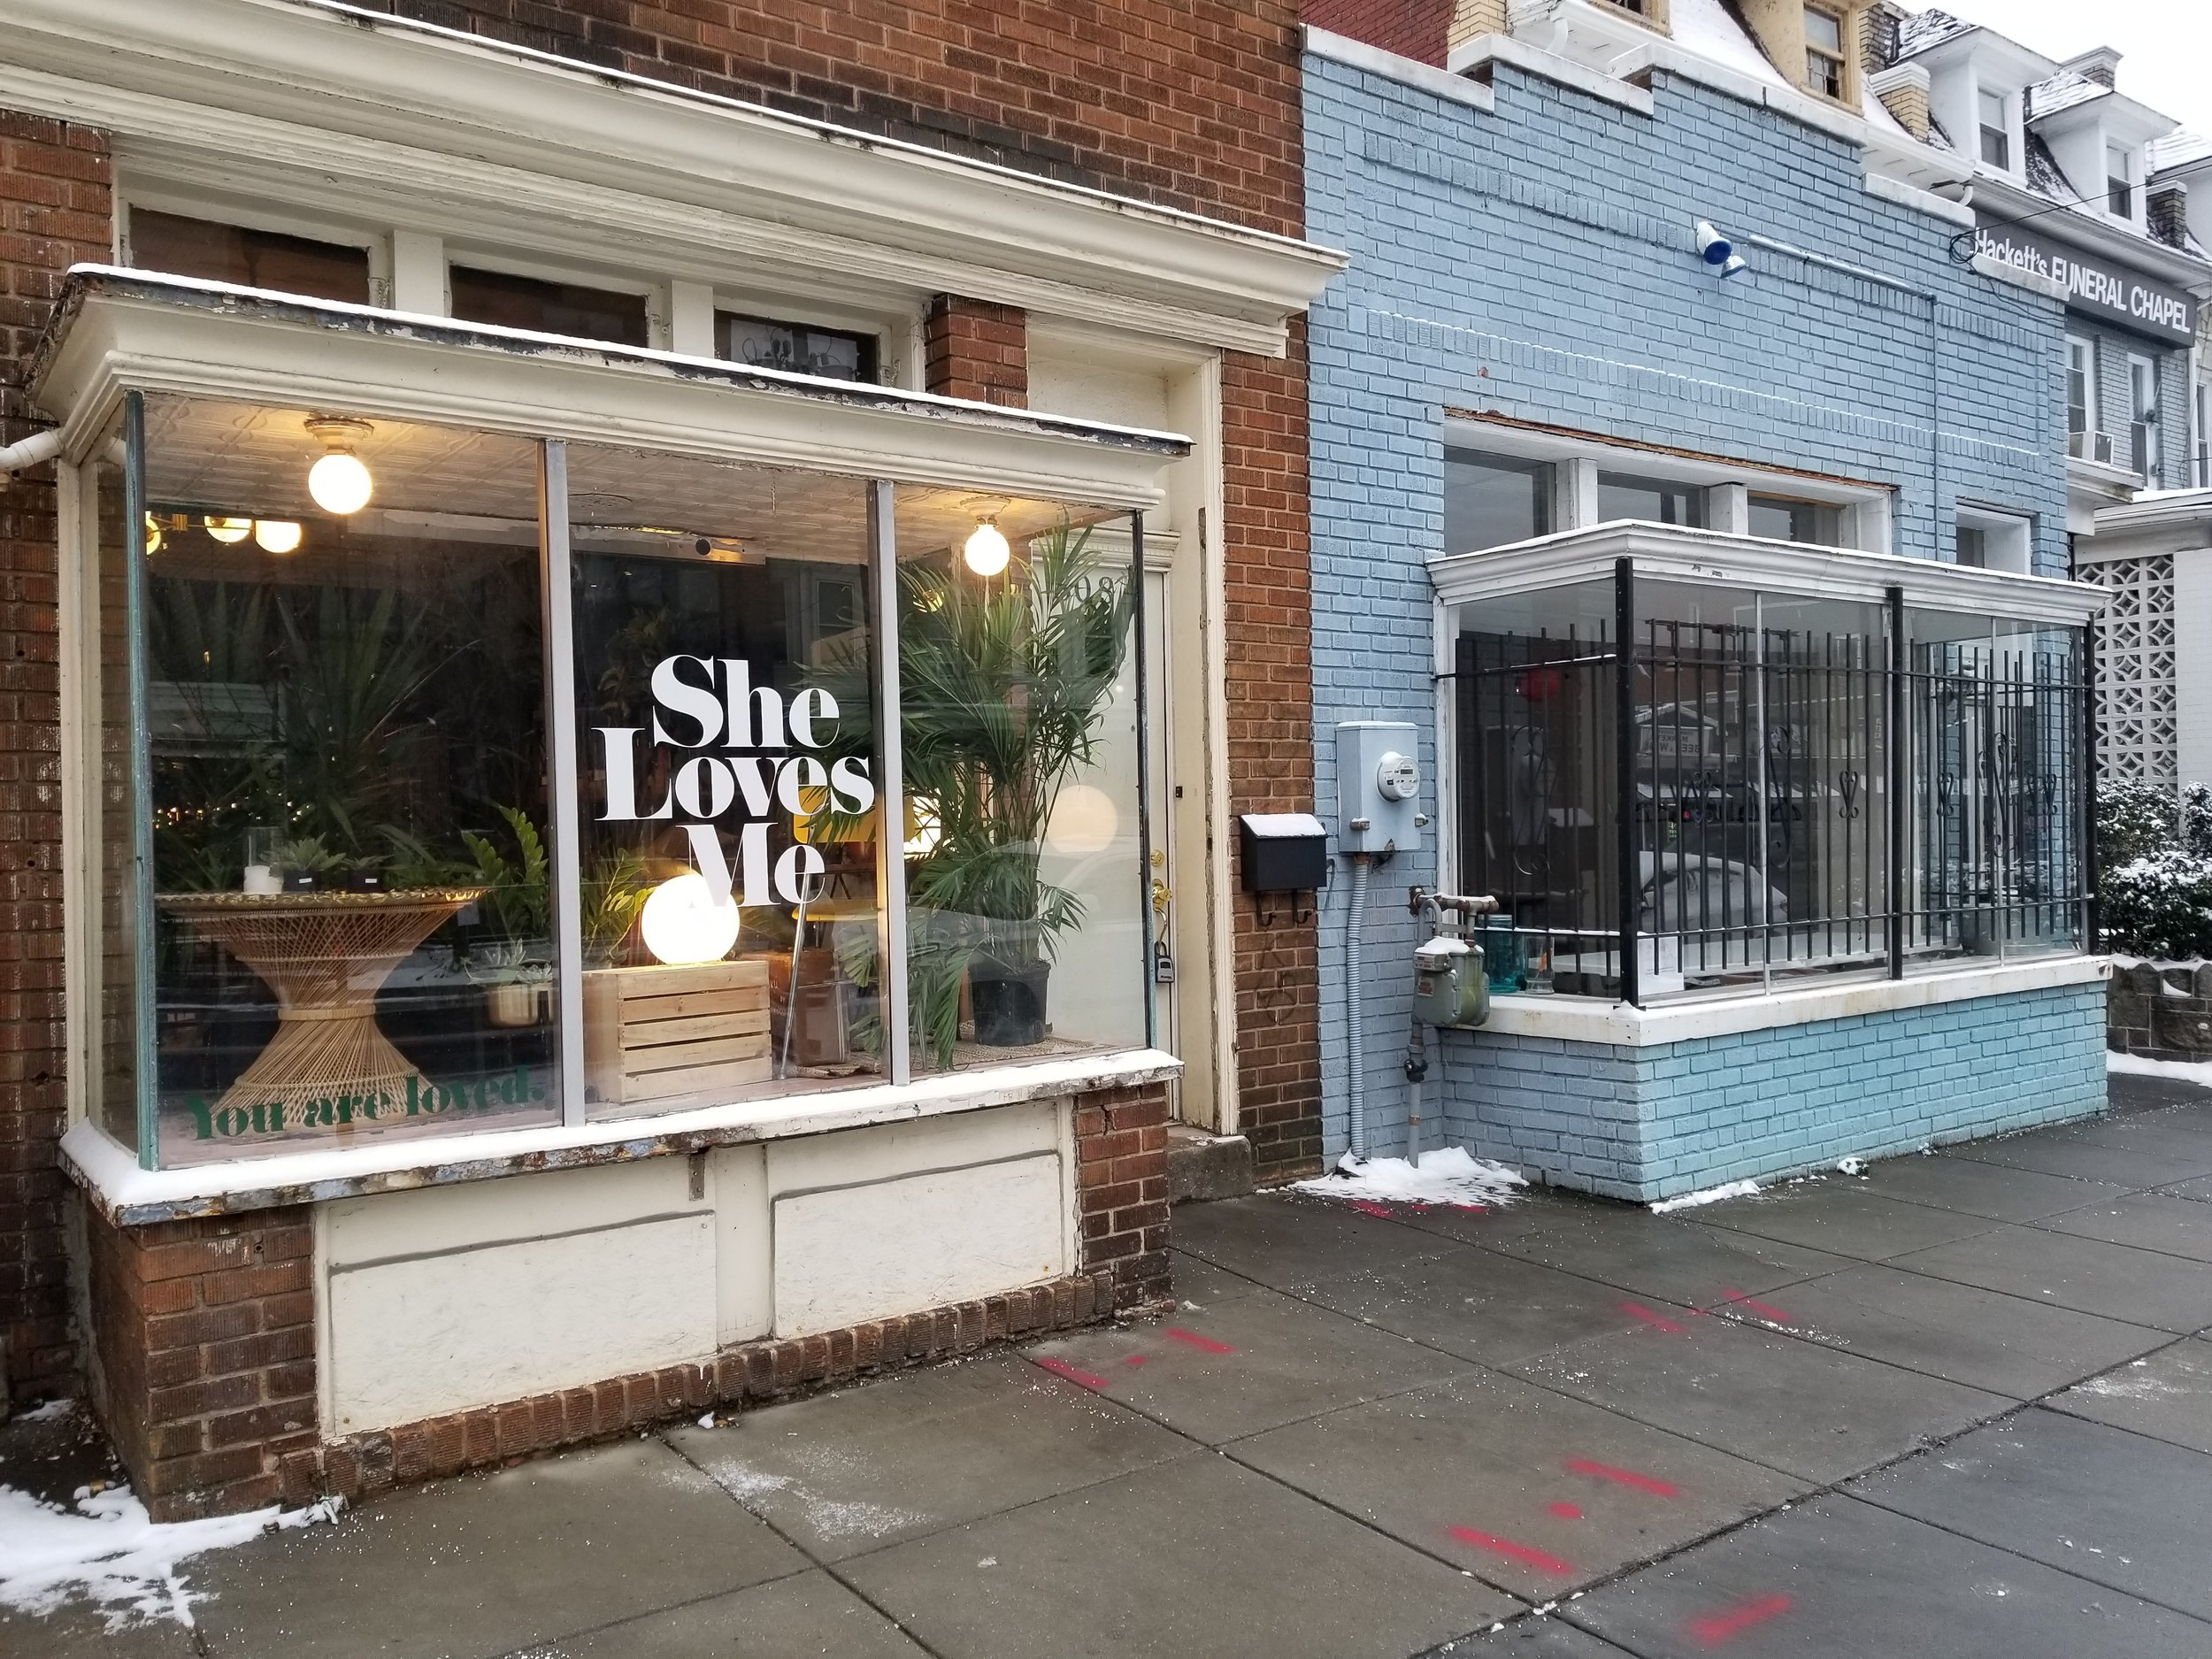 The Lemon Collective will open February 15 at 810 Upshur Street, the blue building to the right of She Loves Me.